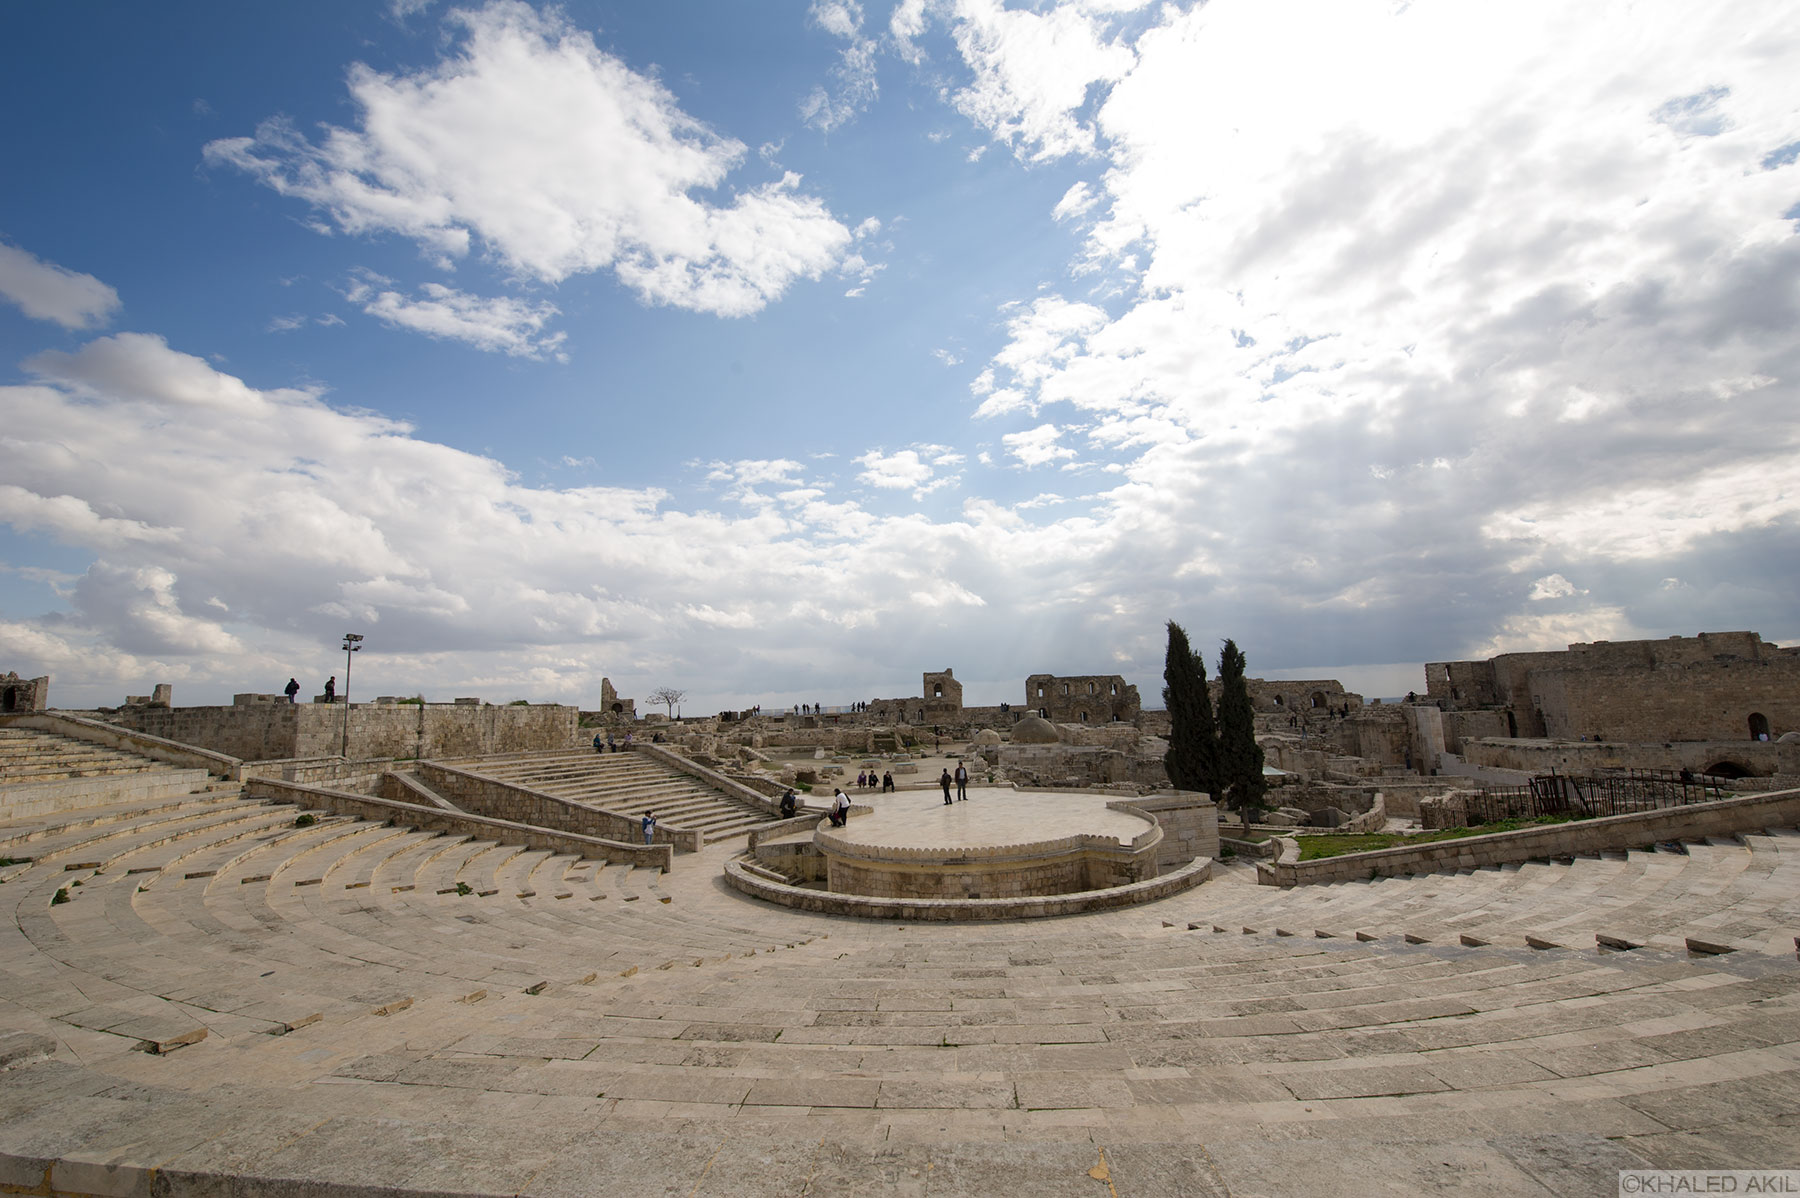 Aleppo appears in historical records as an important city much earlier than Damascus. The first record of Aleppo comes from the third millennium BC, in the Ebla tablets when Aleppo was referred to as Ha-lam.